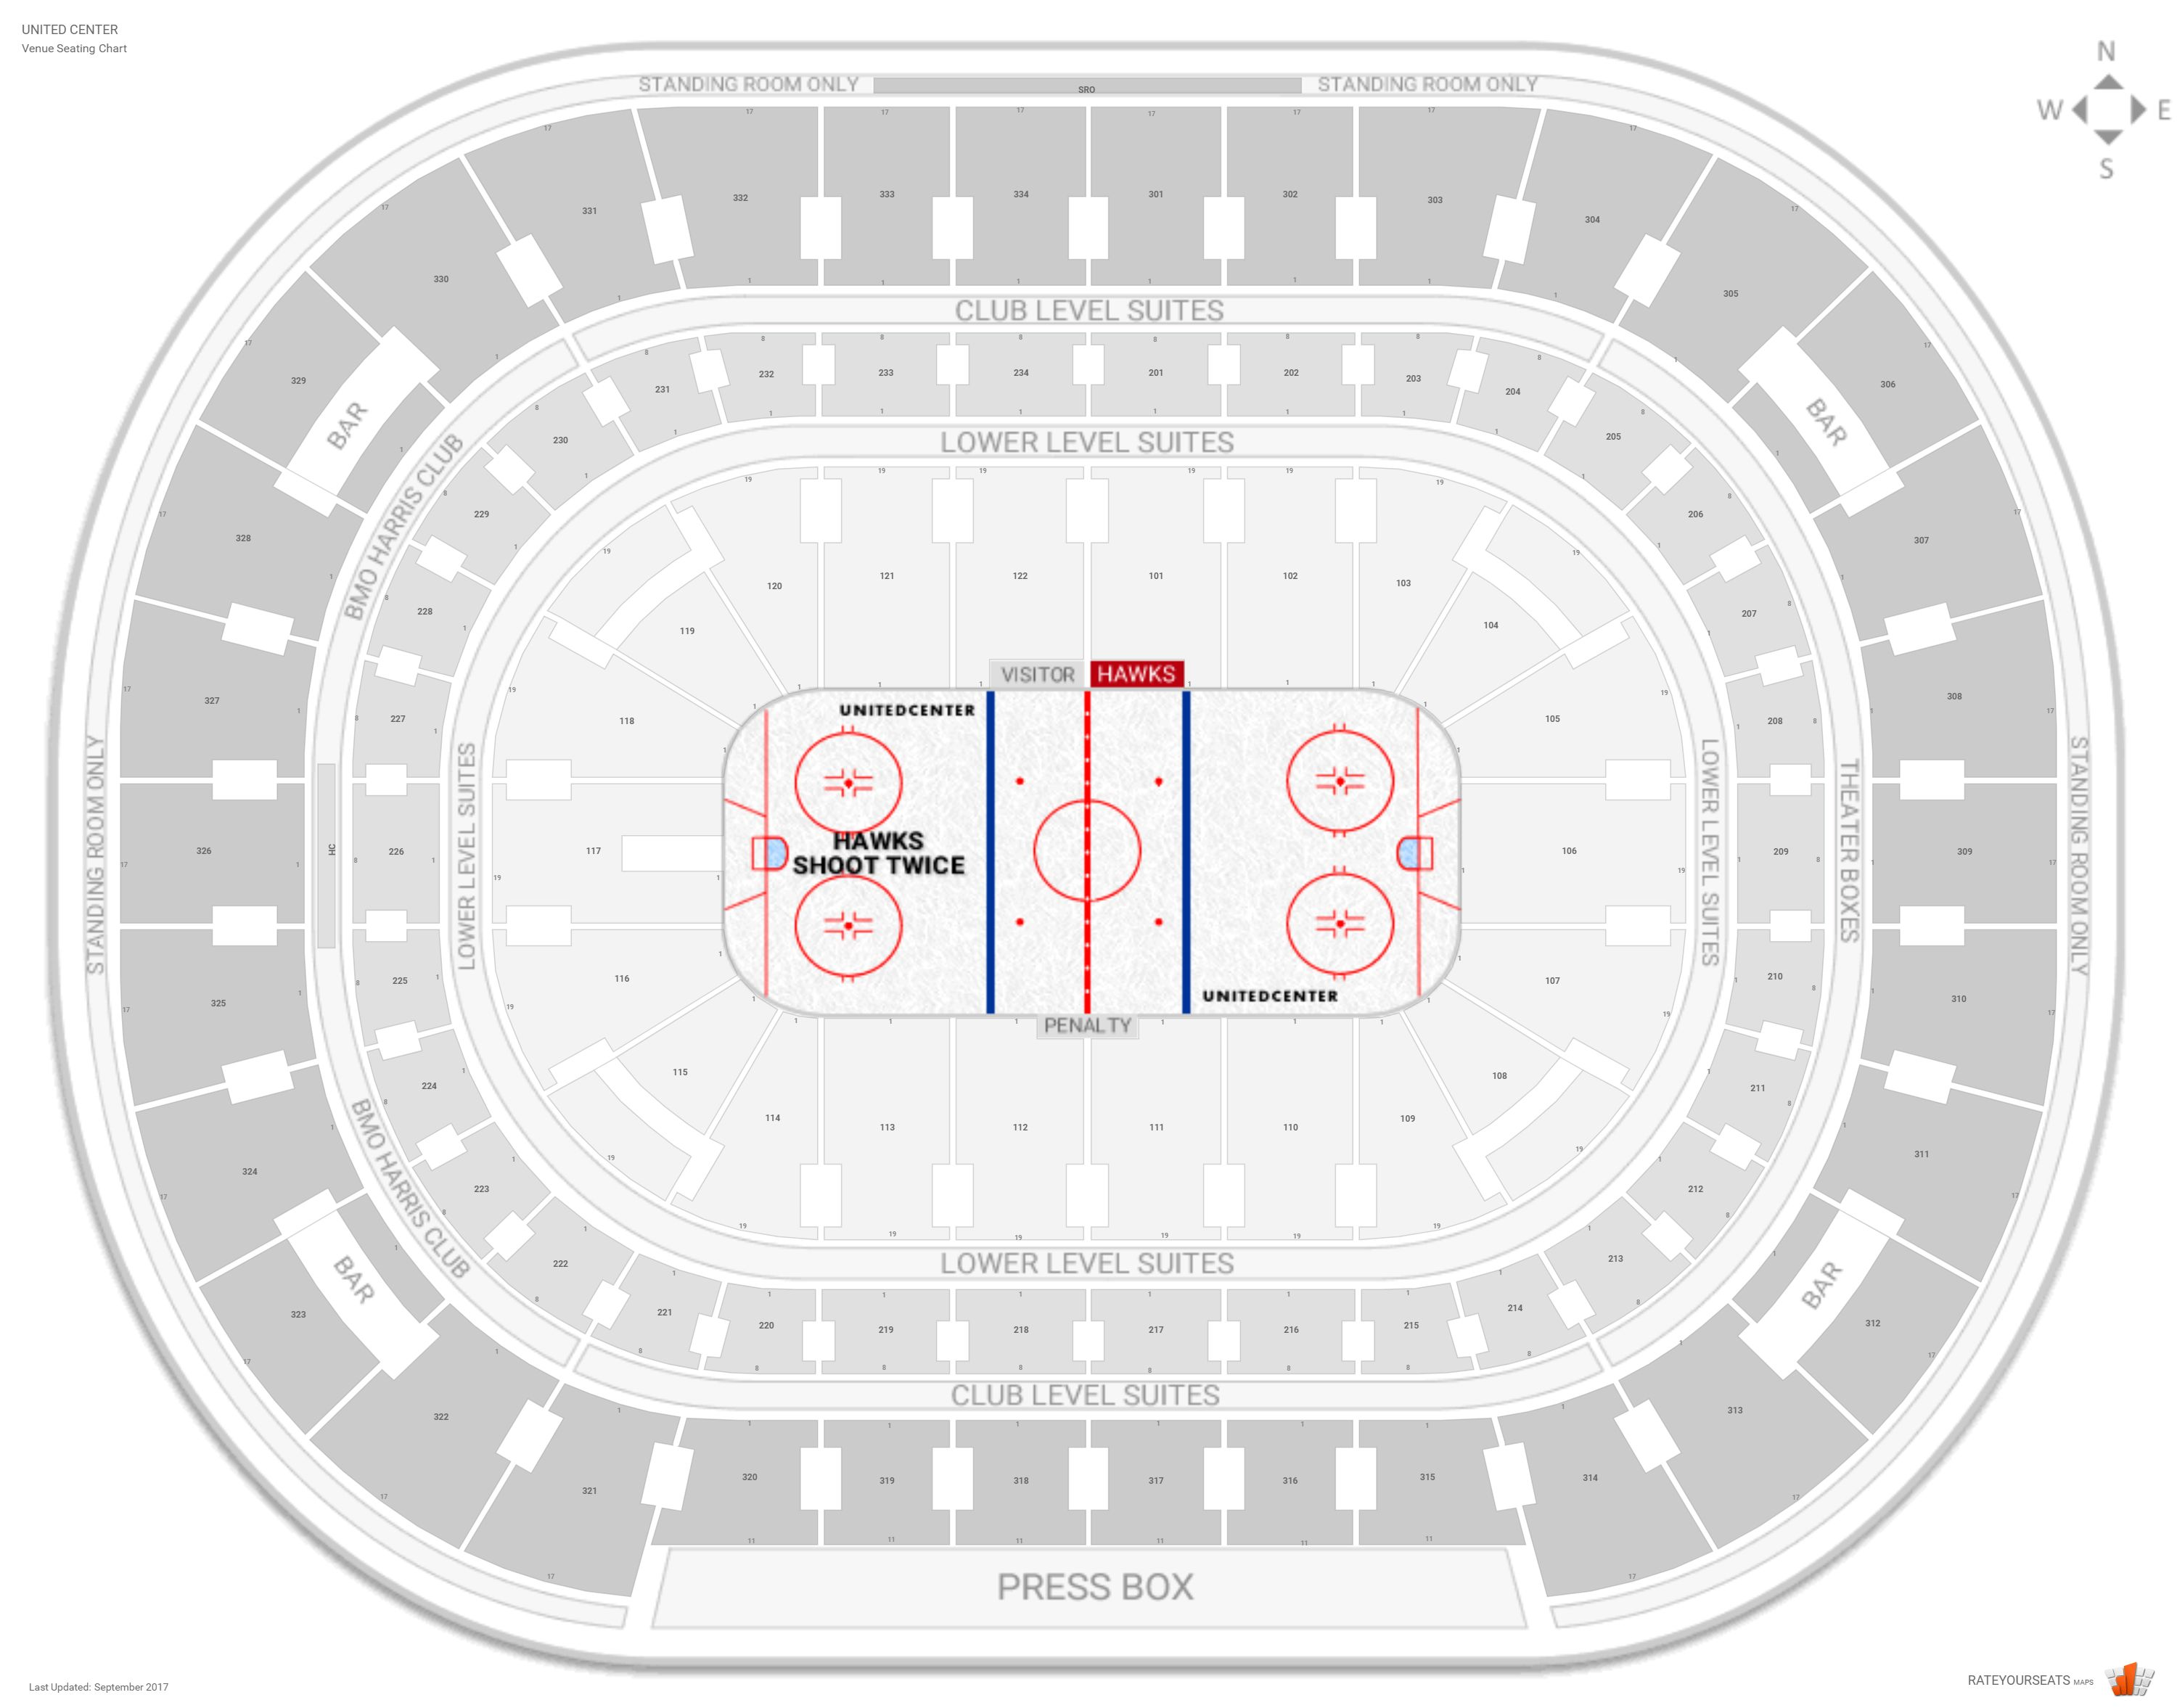 Chicago blackhawks seating guide united center rateyourseats com